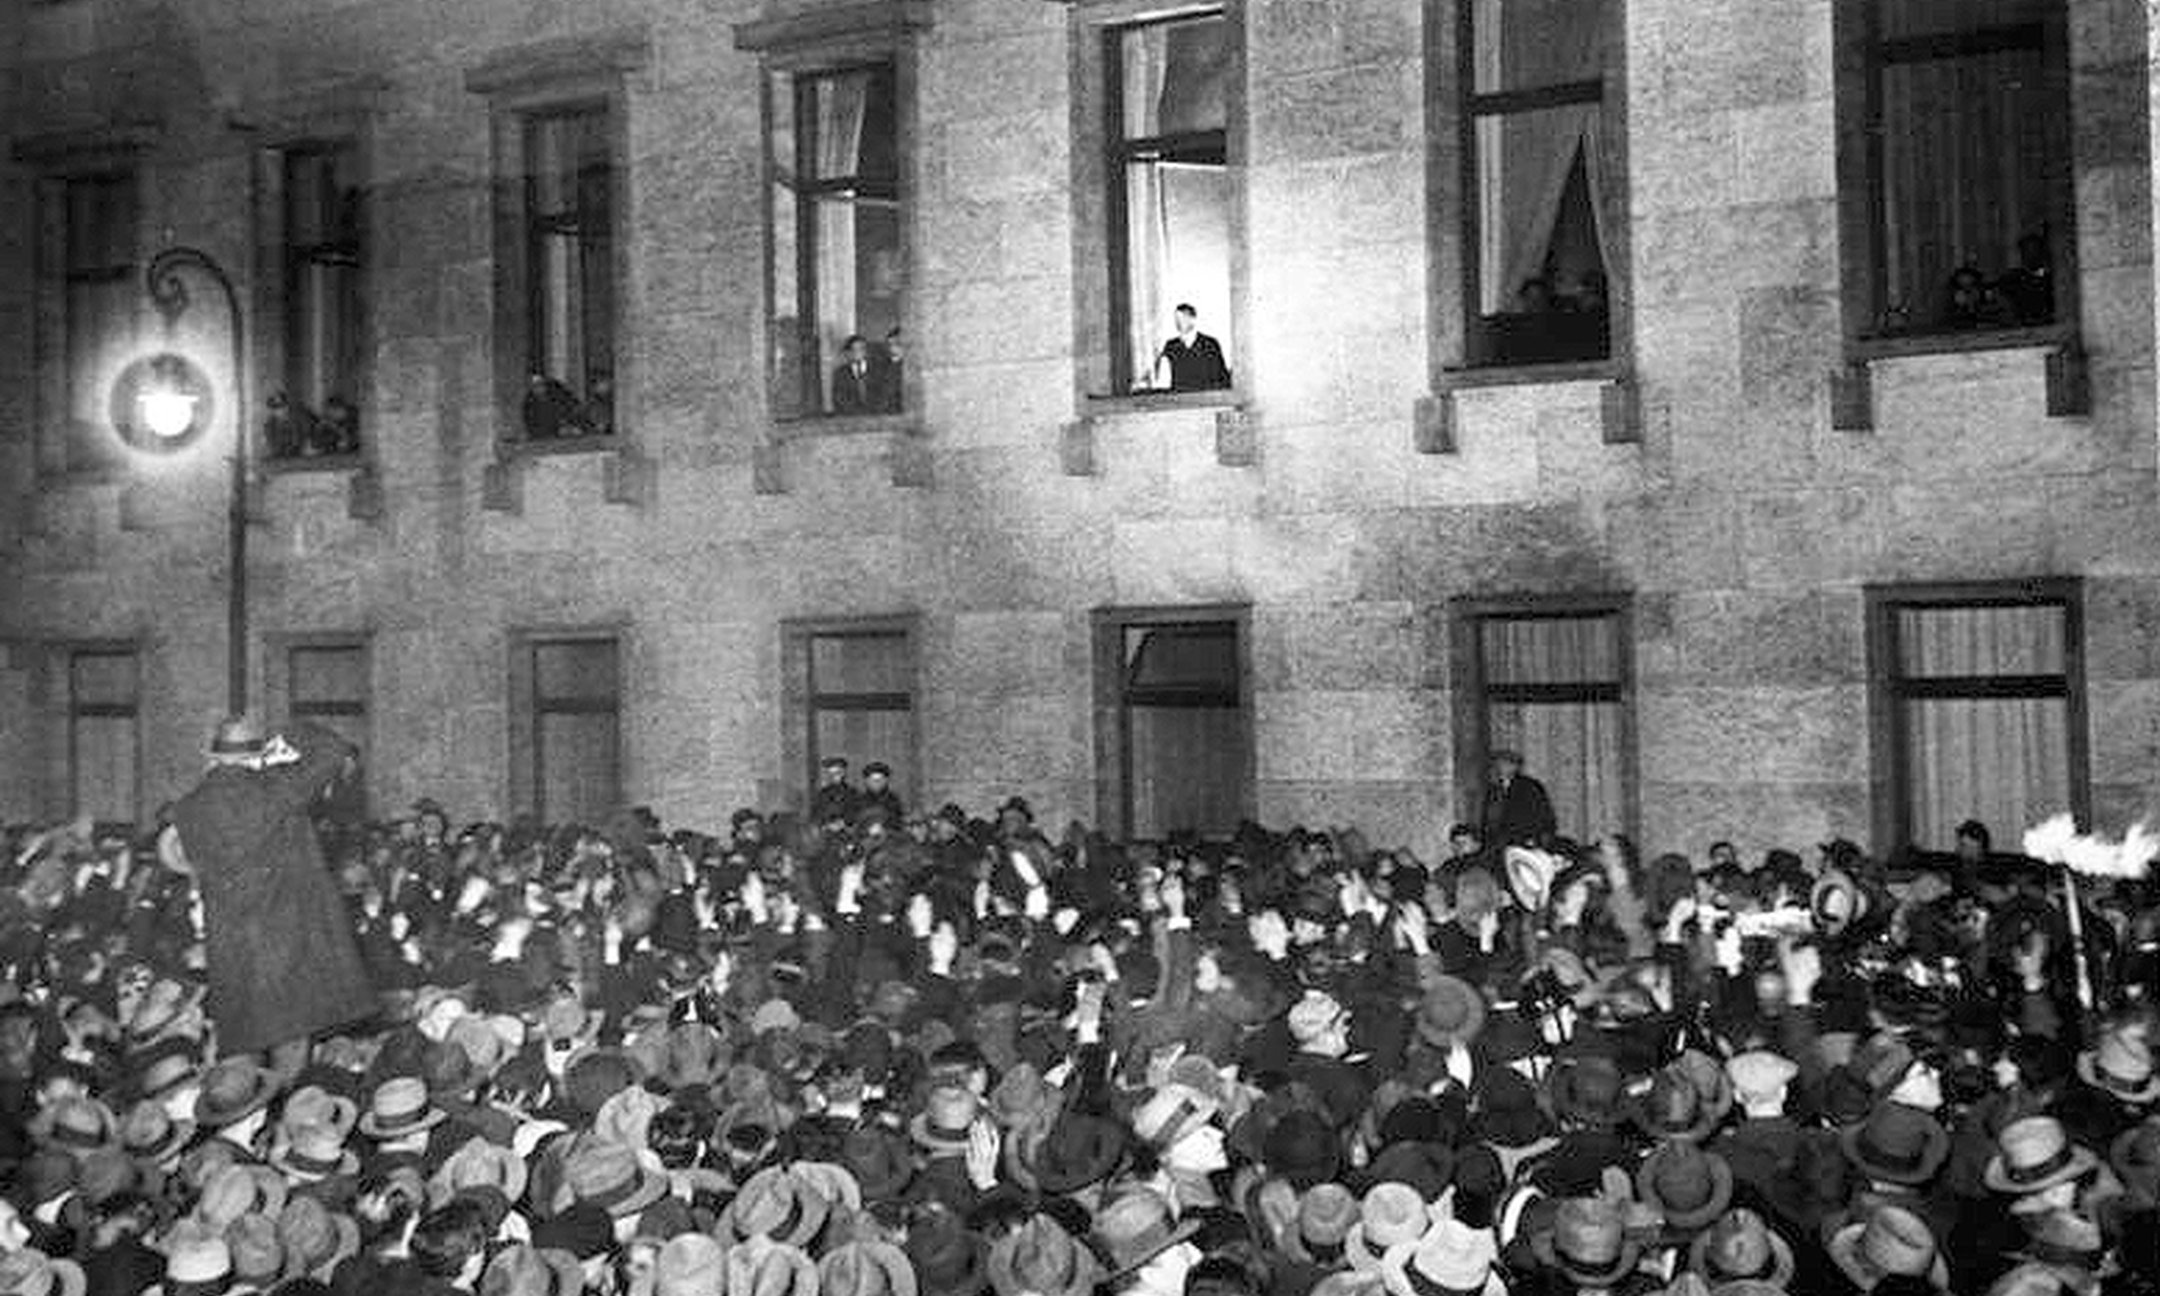 Adolf Hitler waves from the chancellery to the jubilant crowd. They celebrate his appointment as Chancellor of Germany.